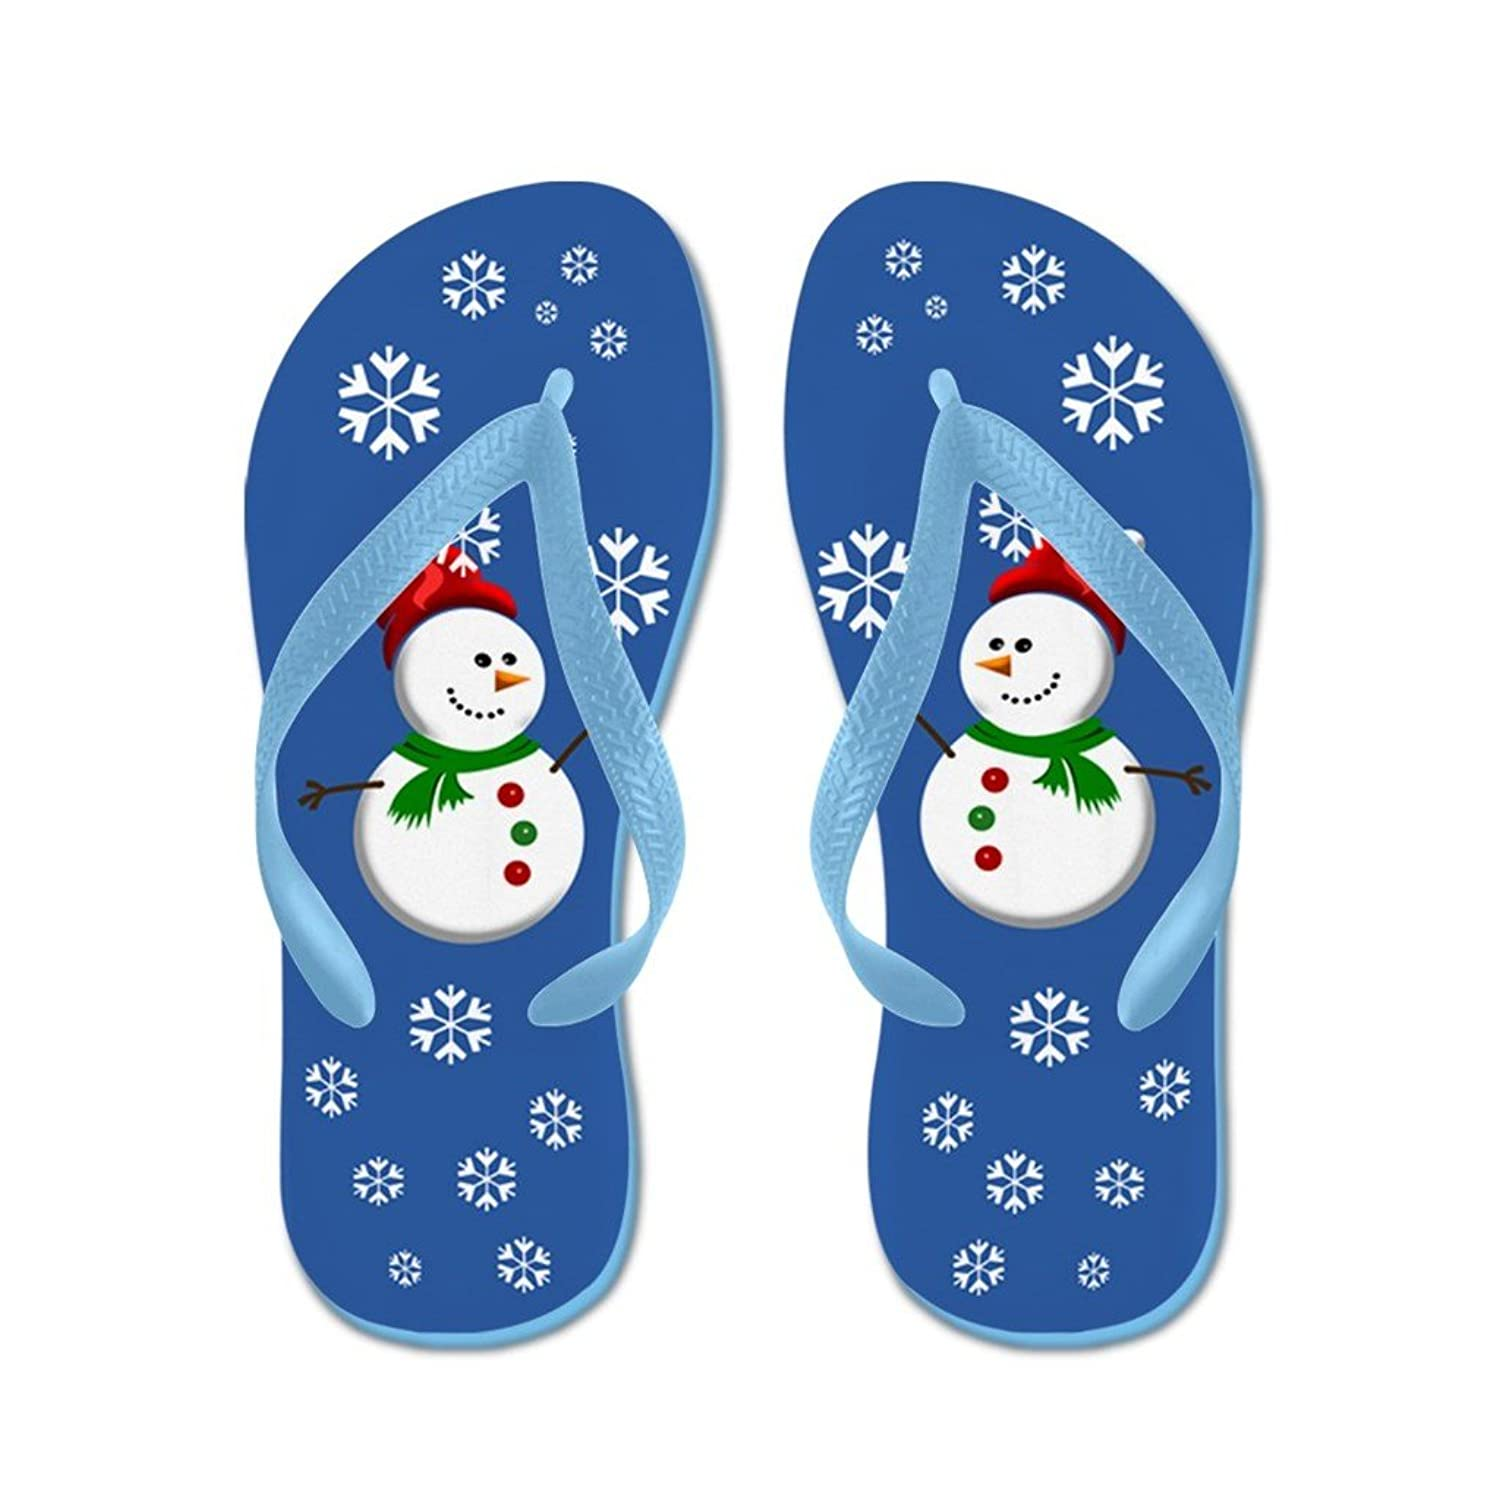 1e72f1044016 Lplpol Friendly Snowmen Flip Flops for Kids and Adult Unisex Beach Sandals  Pool Shoes Party Slippers